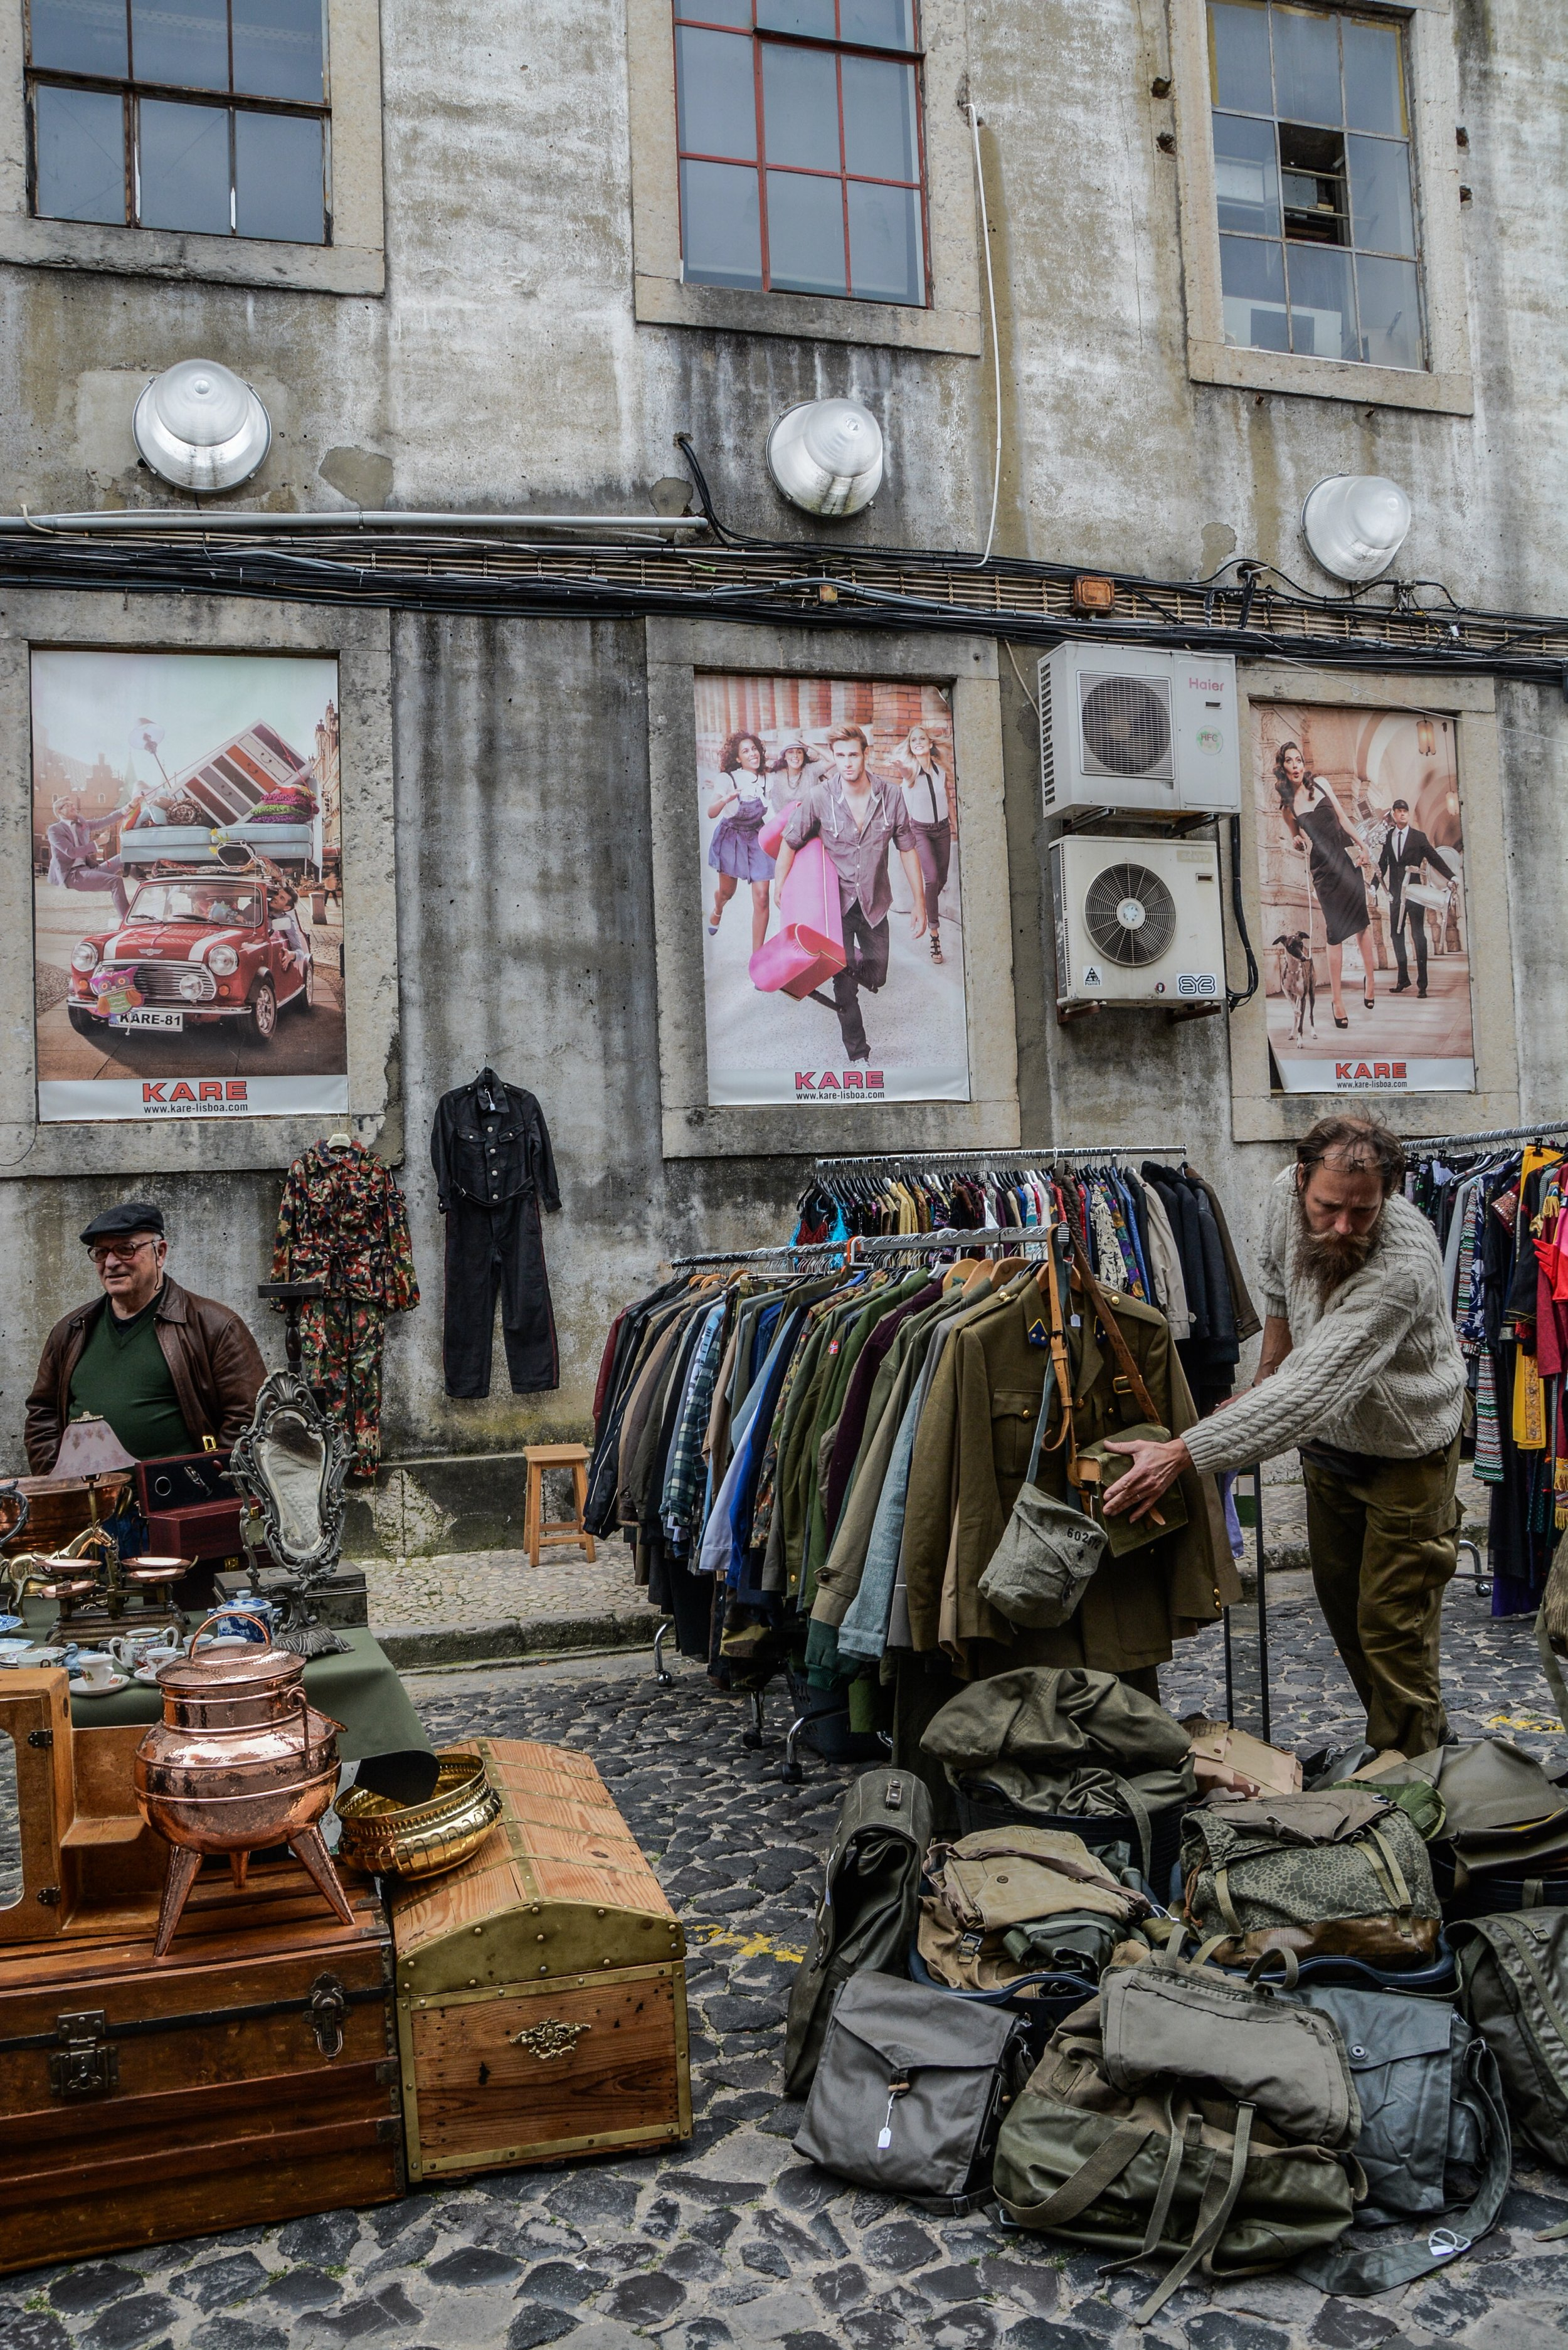 Buy second hand clothing as a sustainable choice